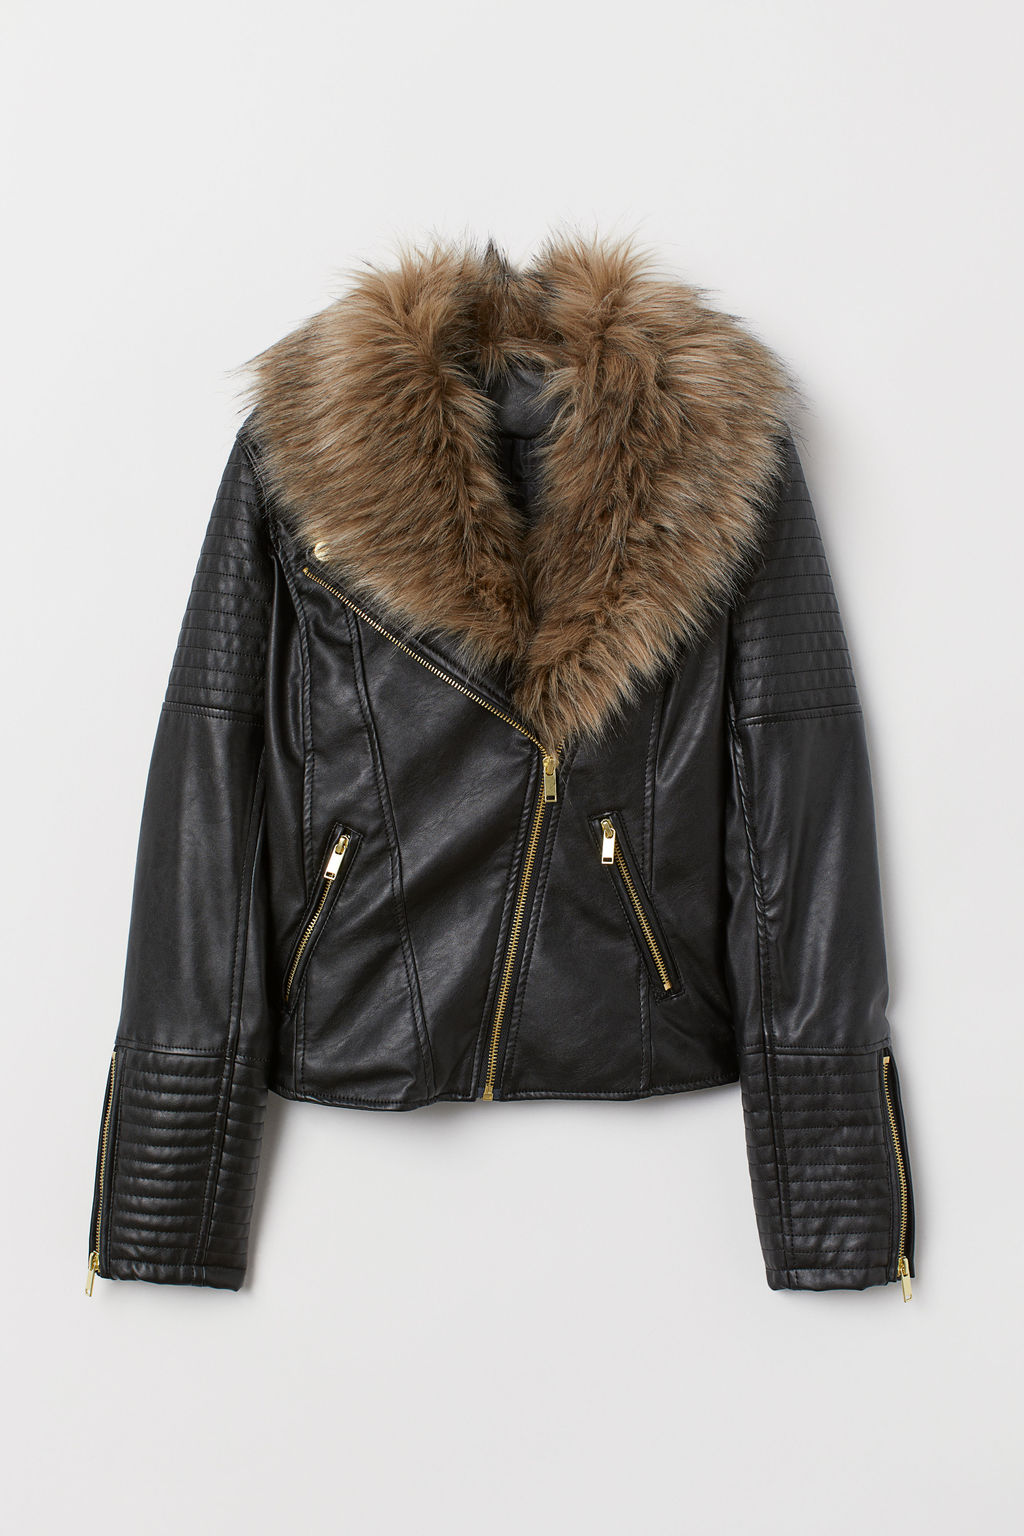 black faux leather jacket with fur trim collar